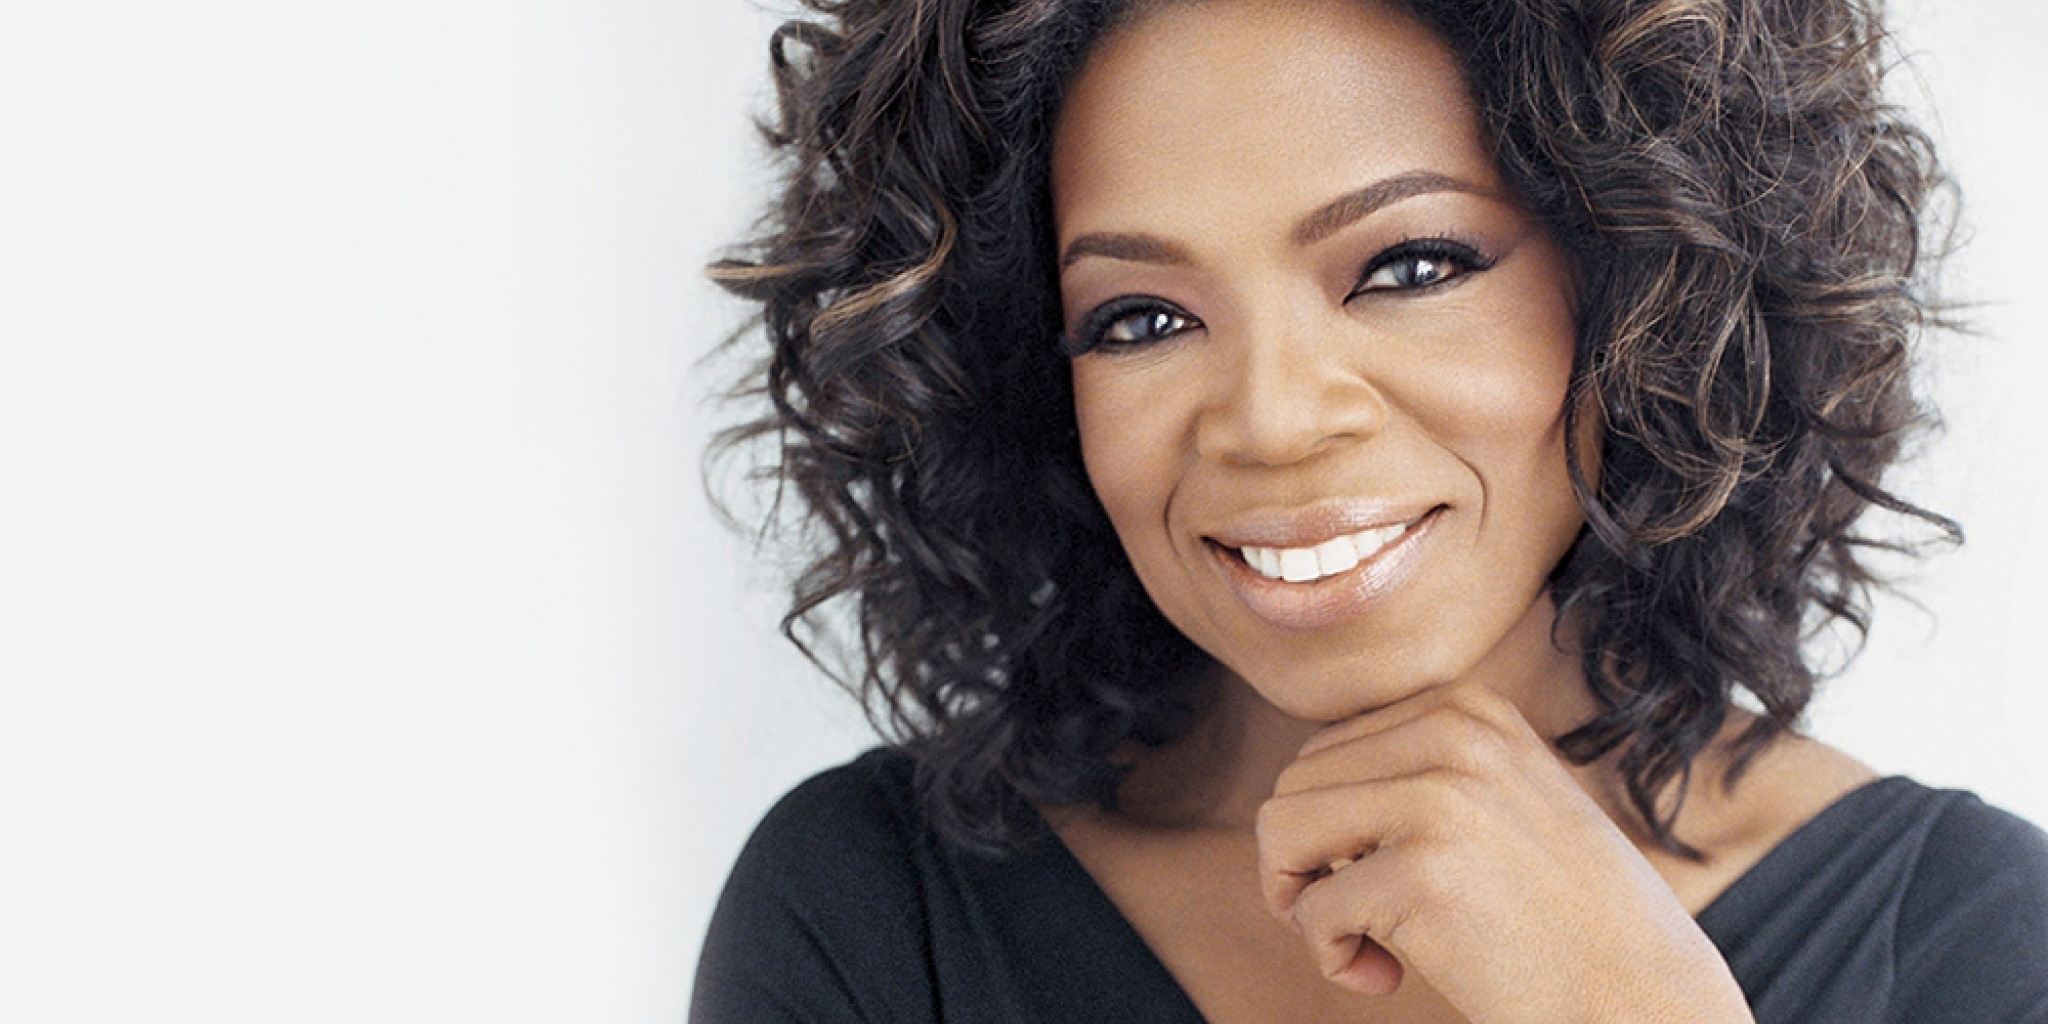 Oprah Winfrey, Historically Black College and University, HBCU, HBCU Alumni, African American Education, Black Colleges, KOLUMN Magazine, KOLUMN